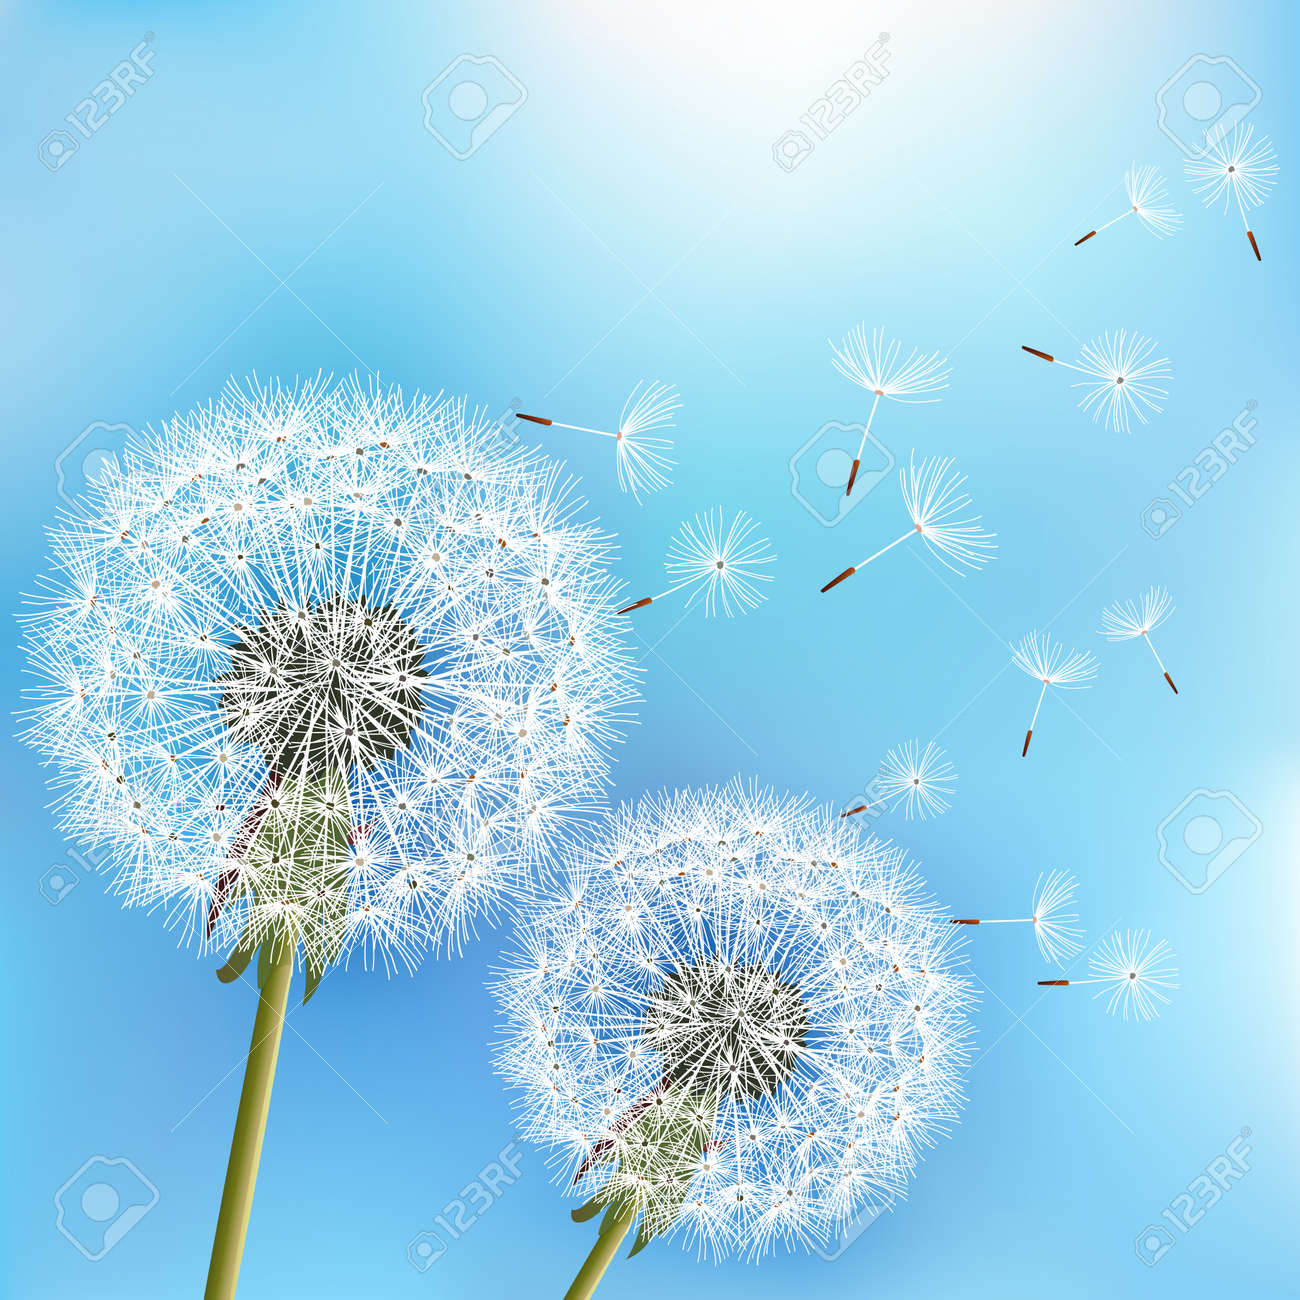 Stylish nature blue background with two flowers dandelions blowing seeds. Trendy floral spring or summer wallpaper. Vector illustration - 82449935